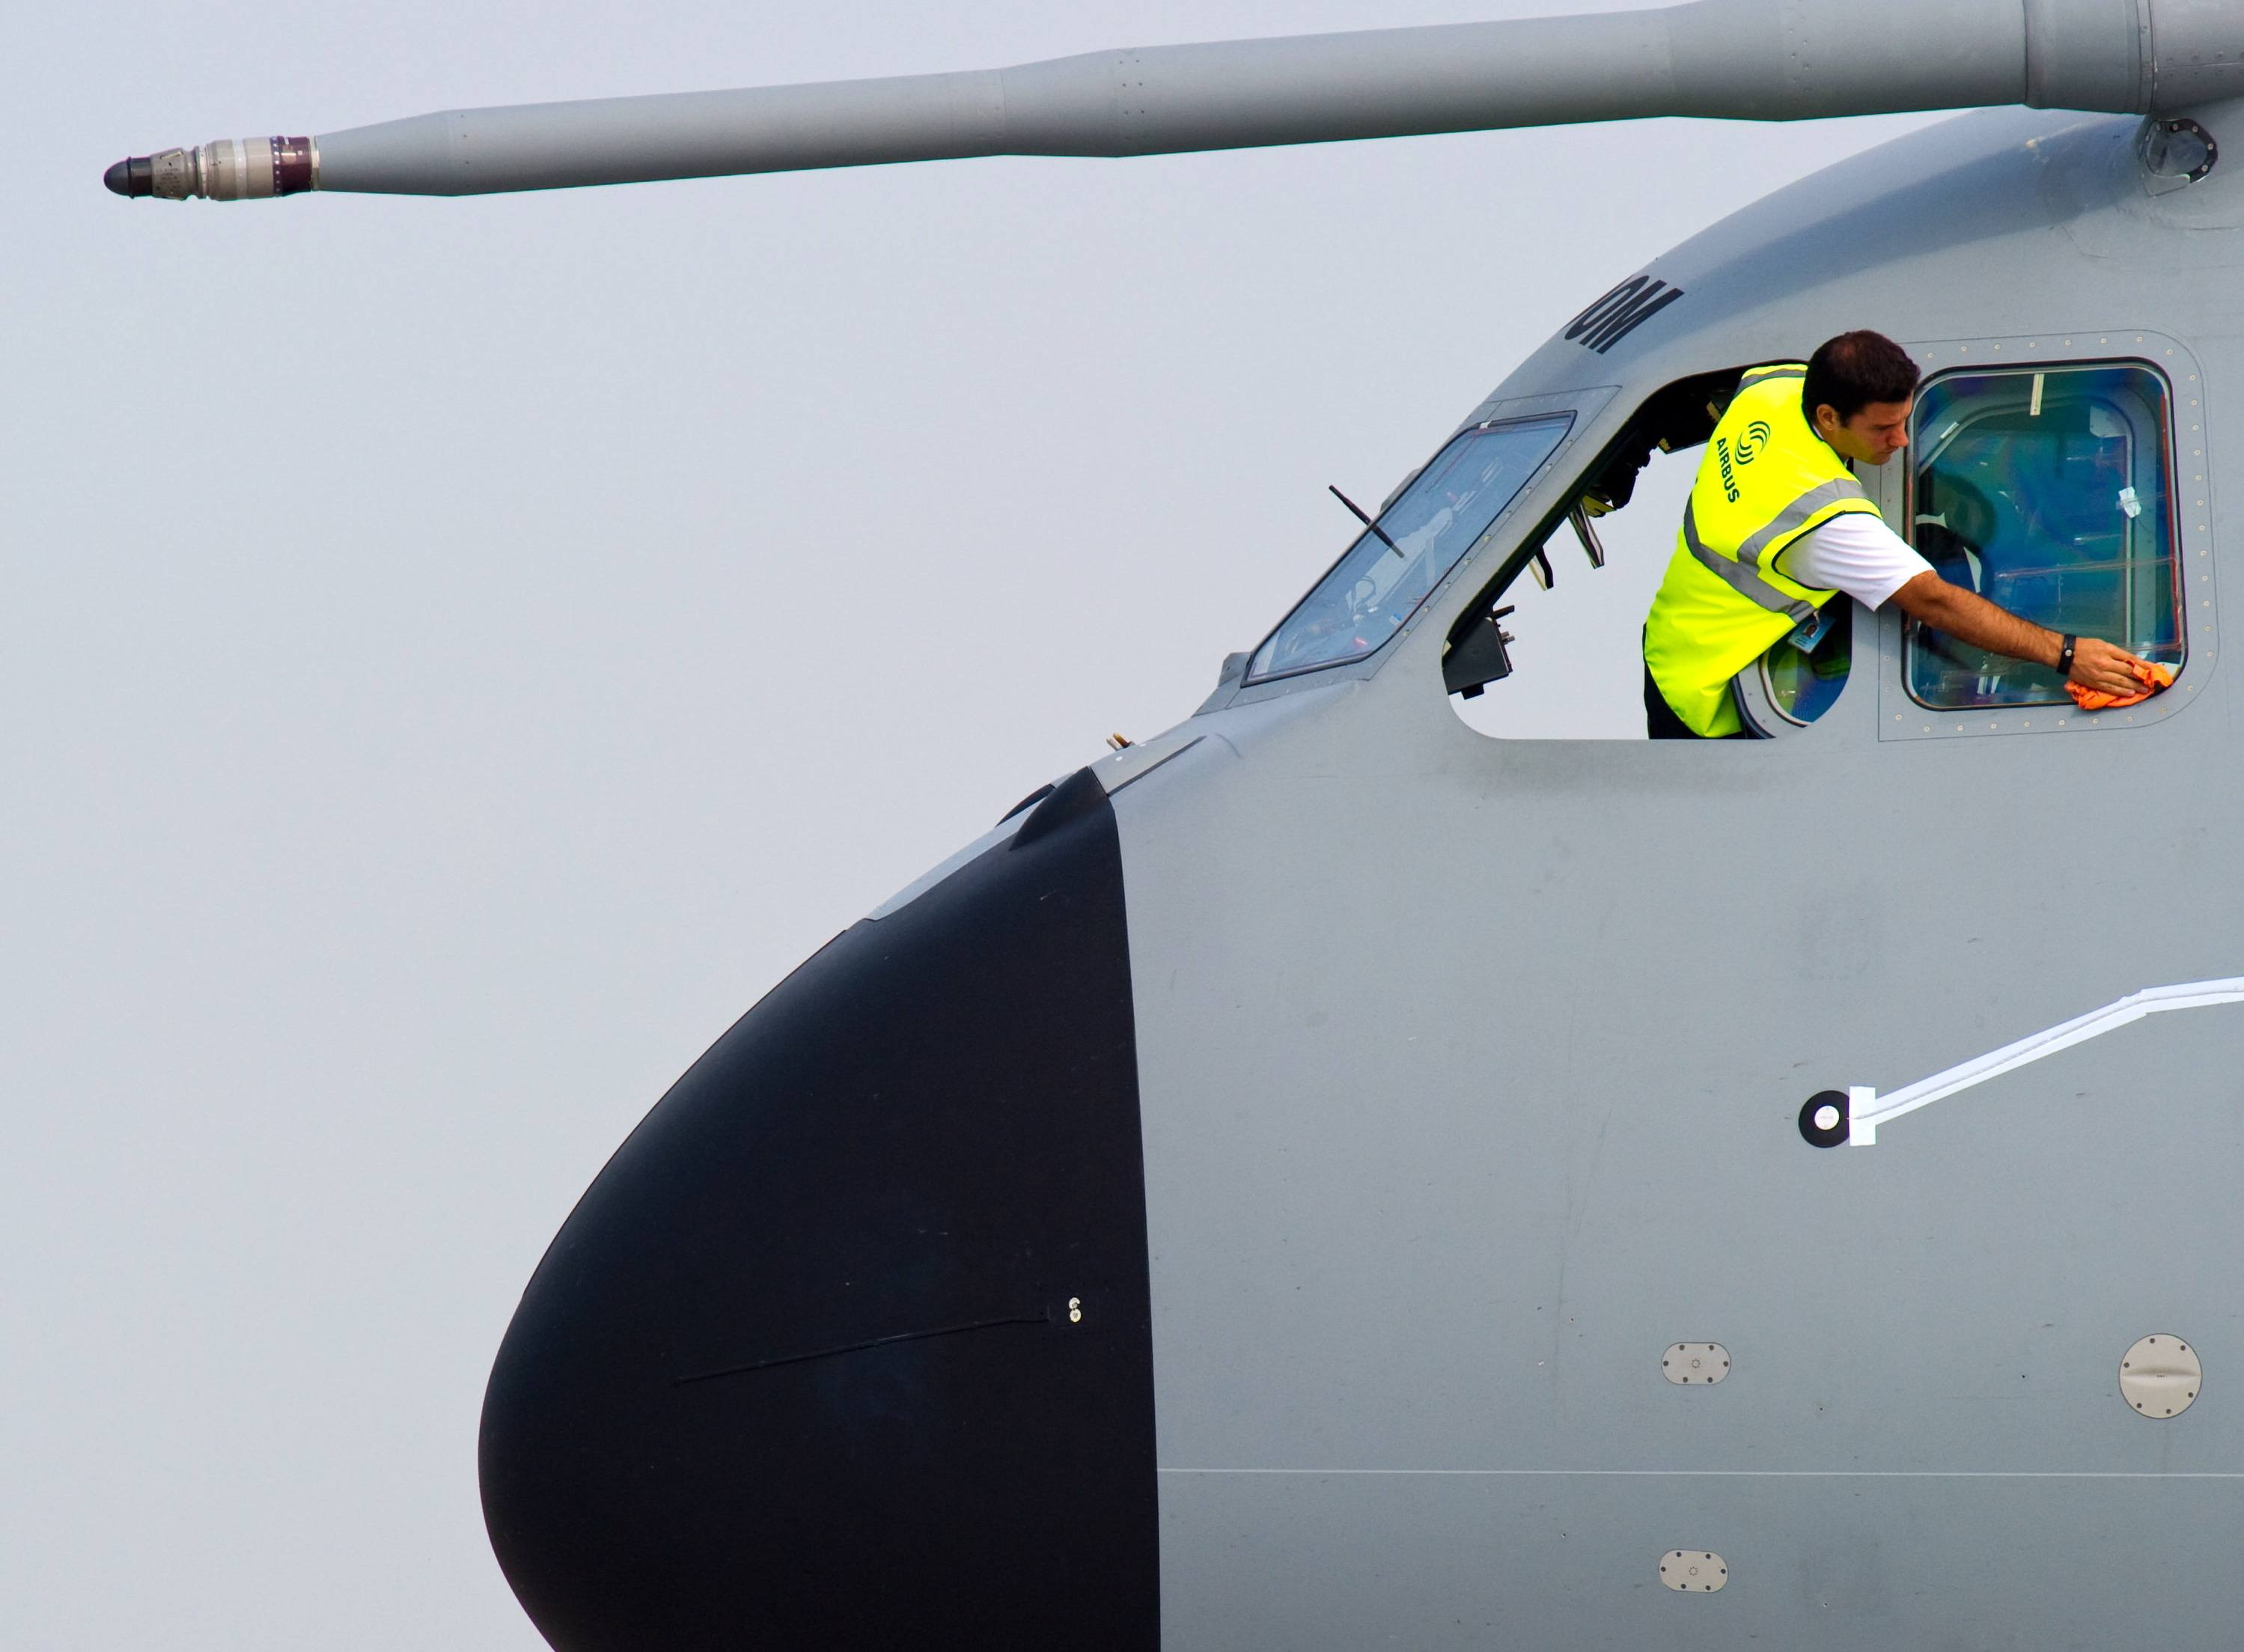 A man cleans the cockpit windows of an Airplane